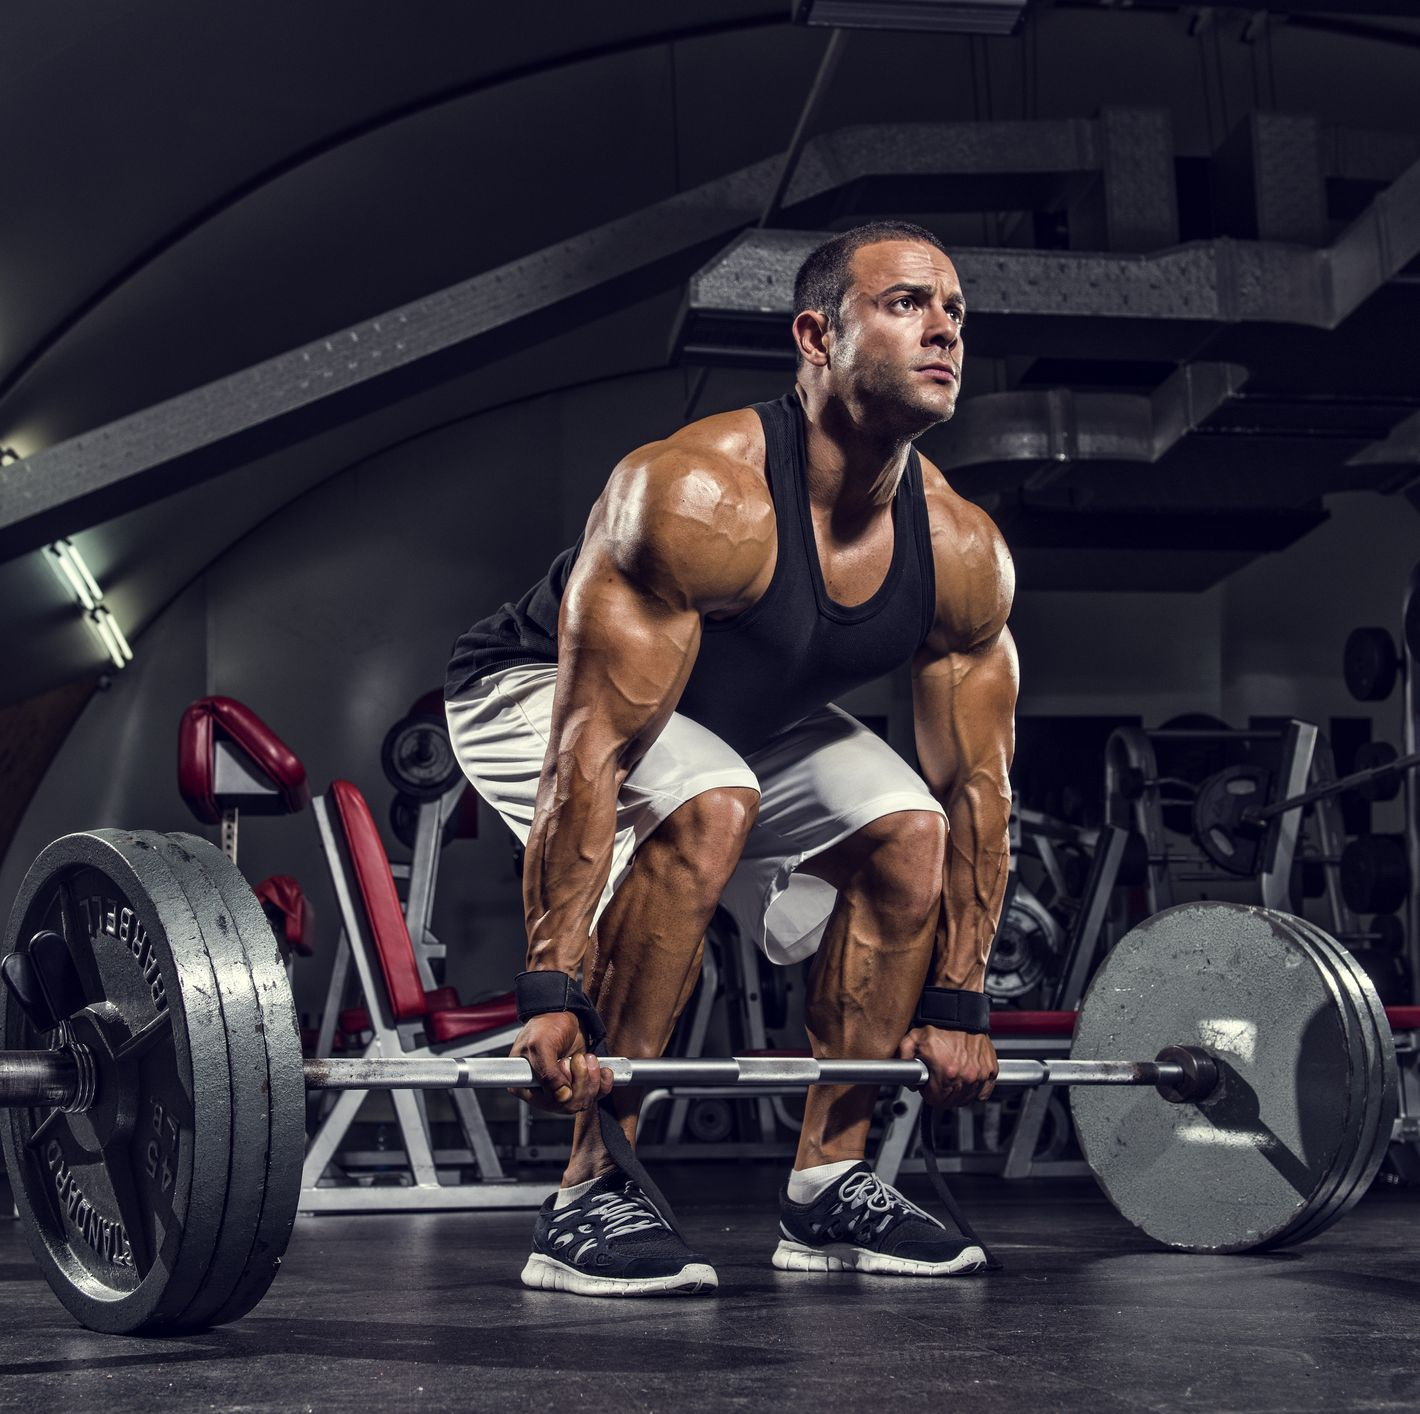 The 12 Essential Moves to Build Hamstring Muscle